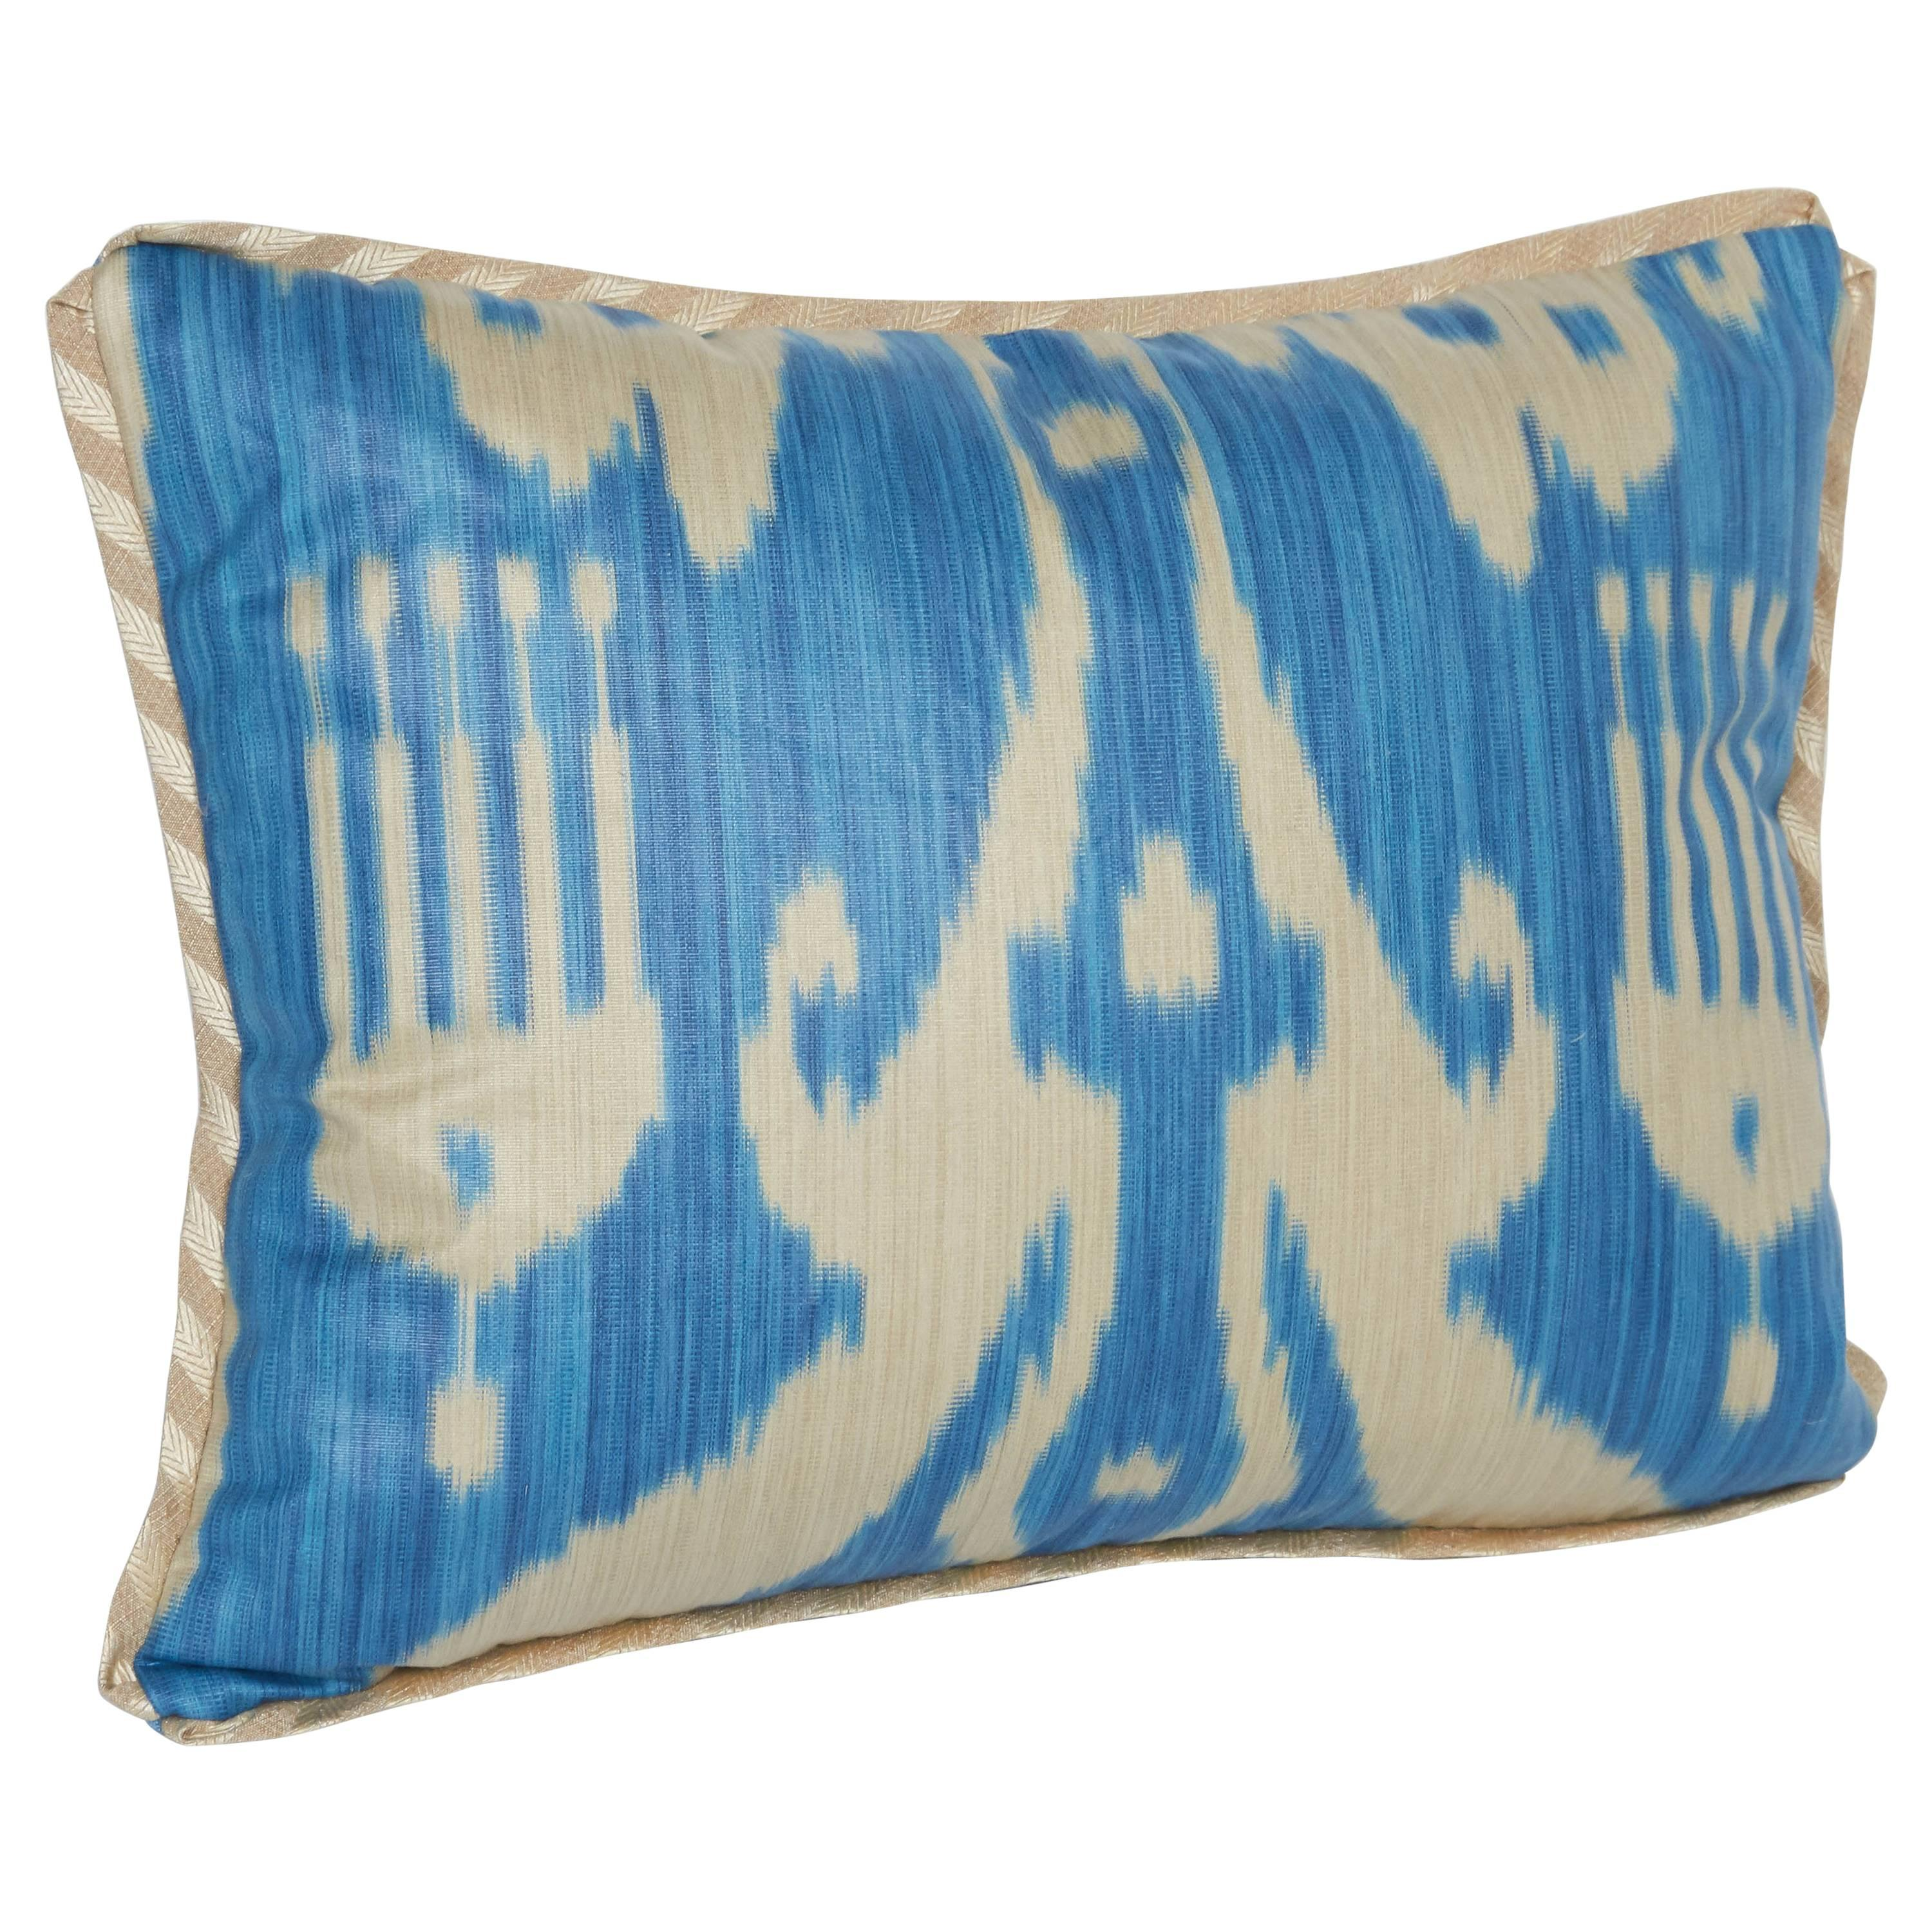 A Newly Made Lumbar Cushion in Vintage Ikat Fabric